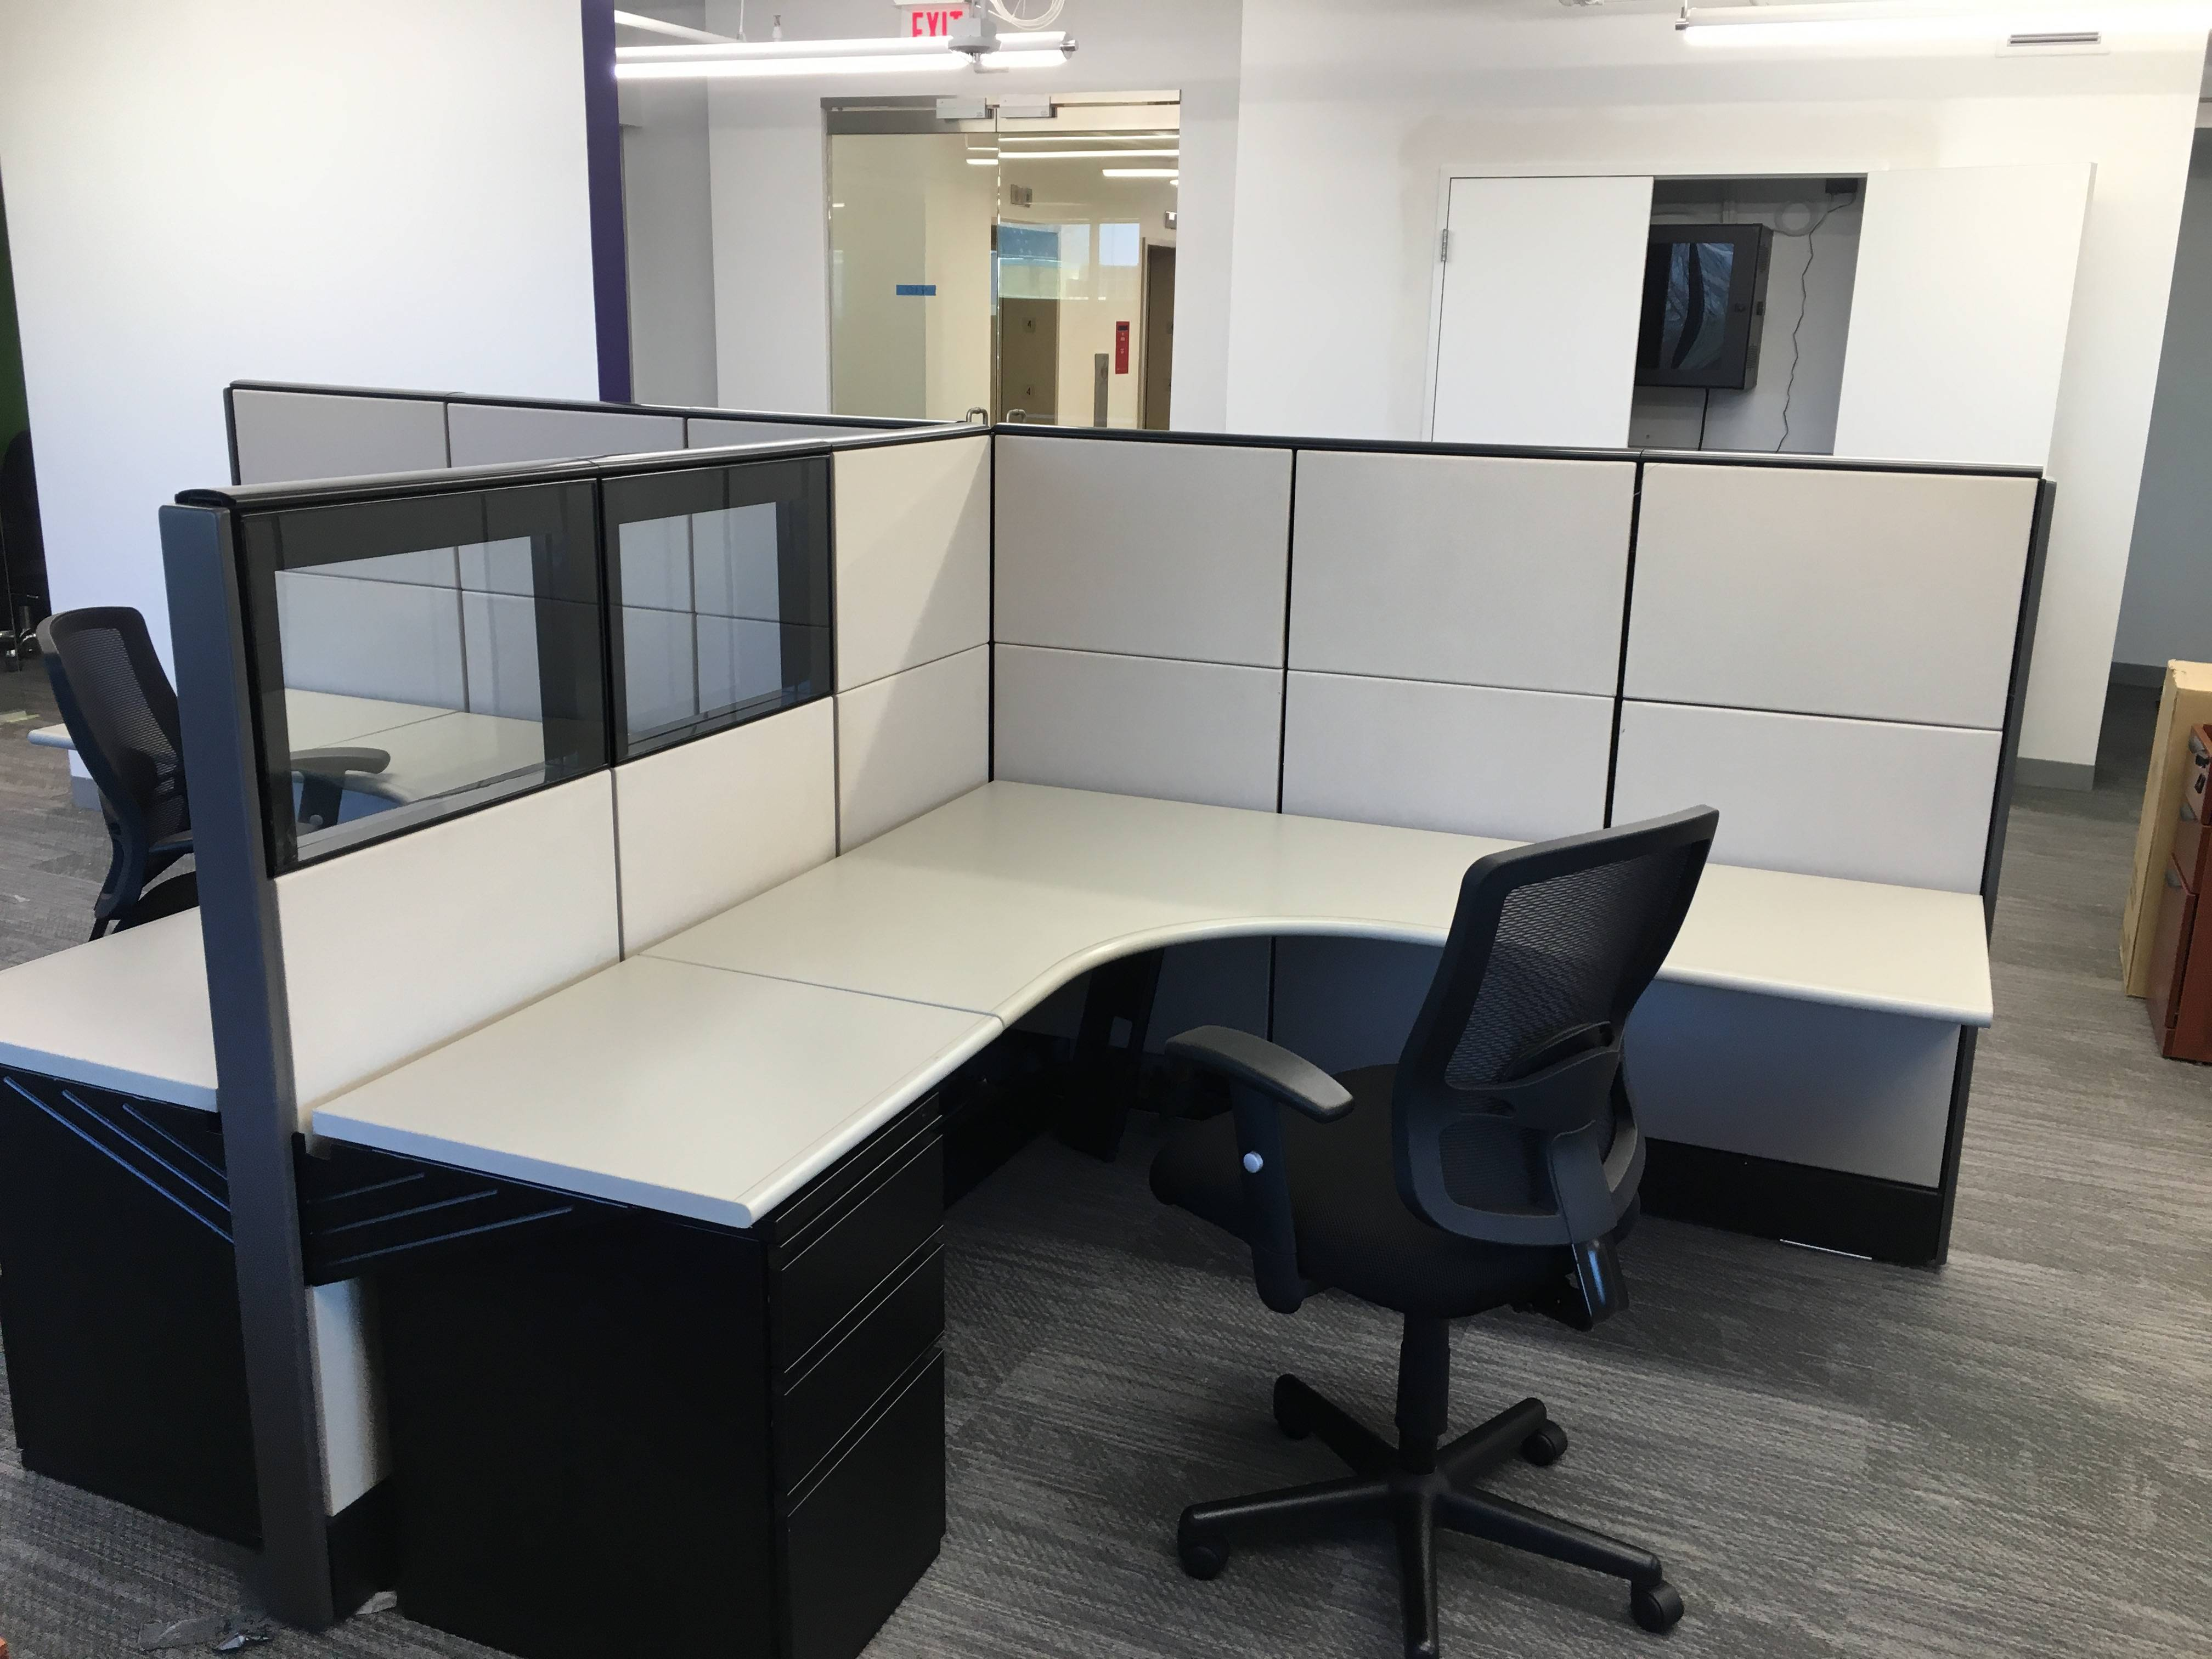 office cubicle installation service in clinton MD